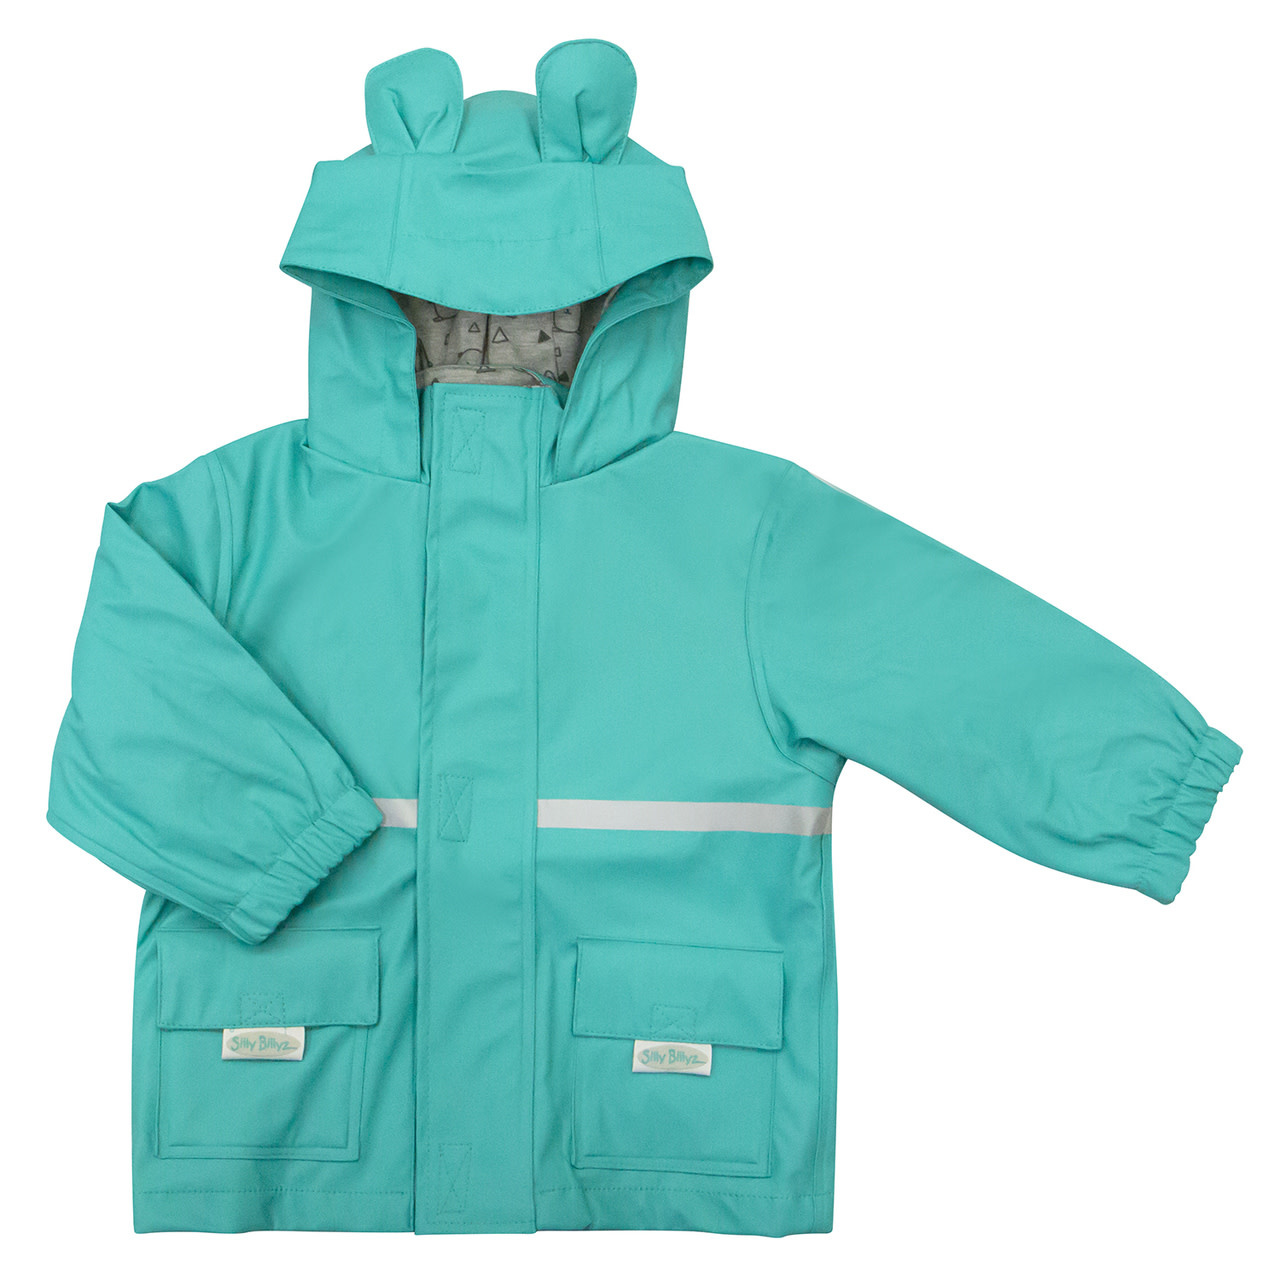 Silly Billyz Silly Billyz Waterproof Jackets Head Aqua